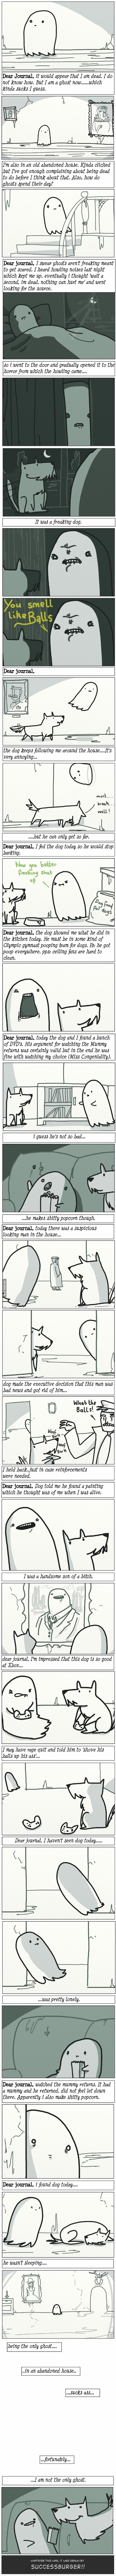 The Cutest Ghost Story Ever  Awwwwwwwwwwwwwwwwwwwwwwwwwwww♥